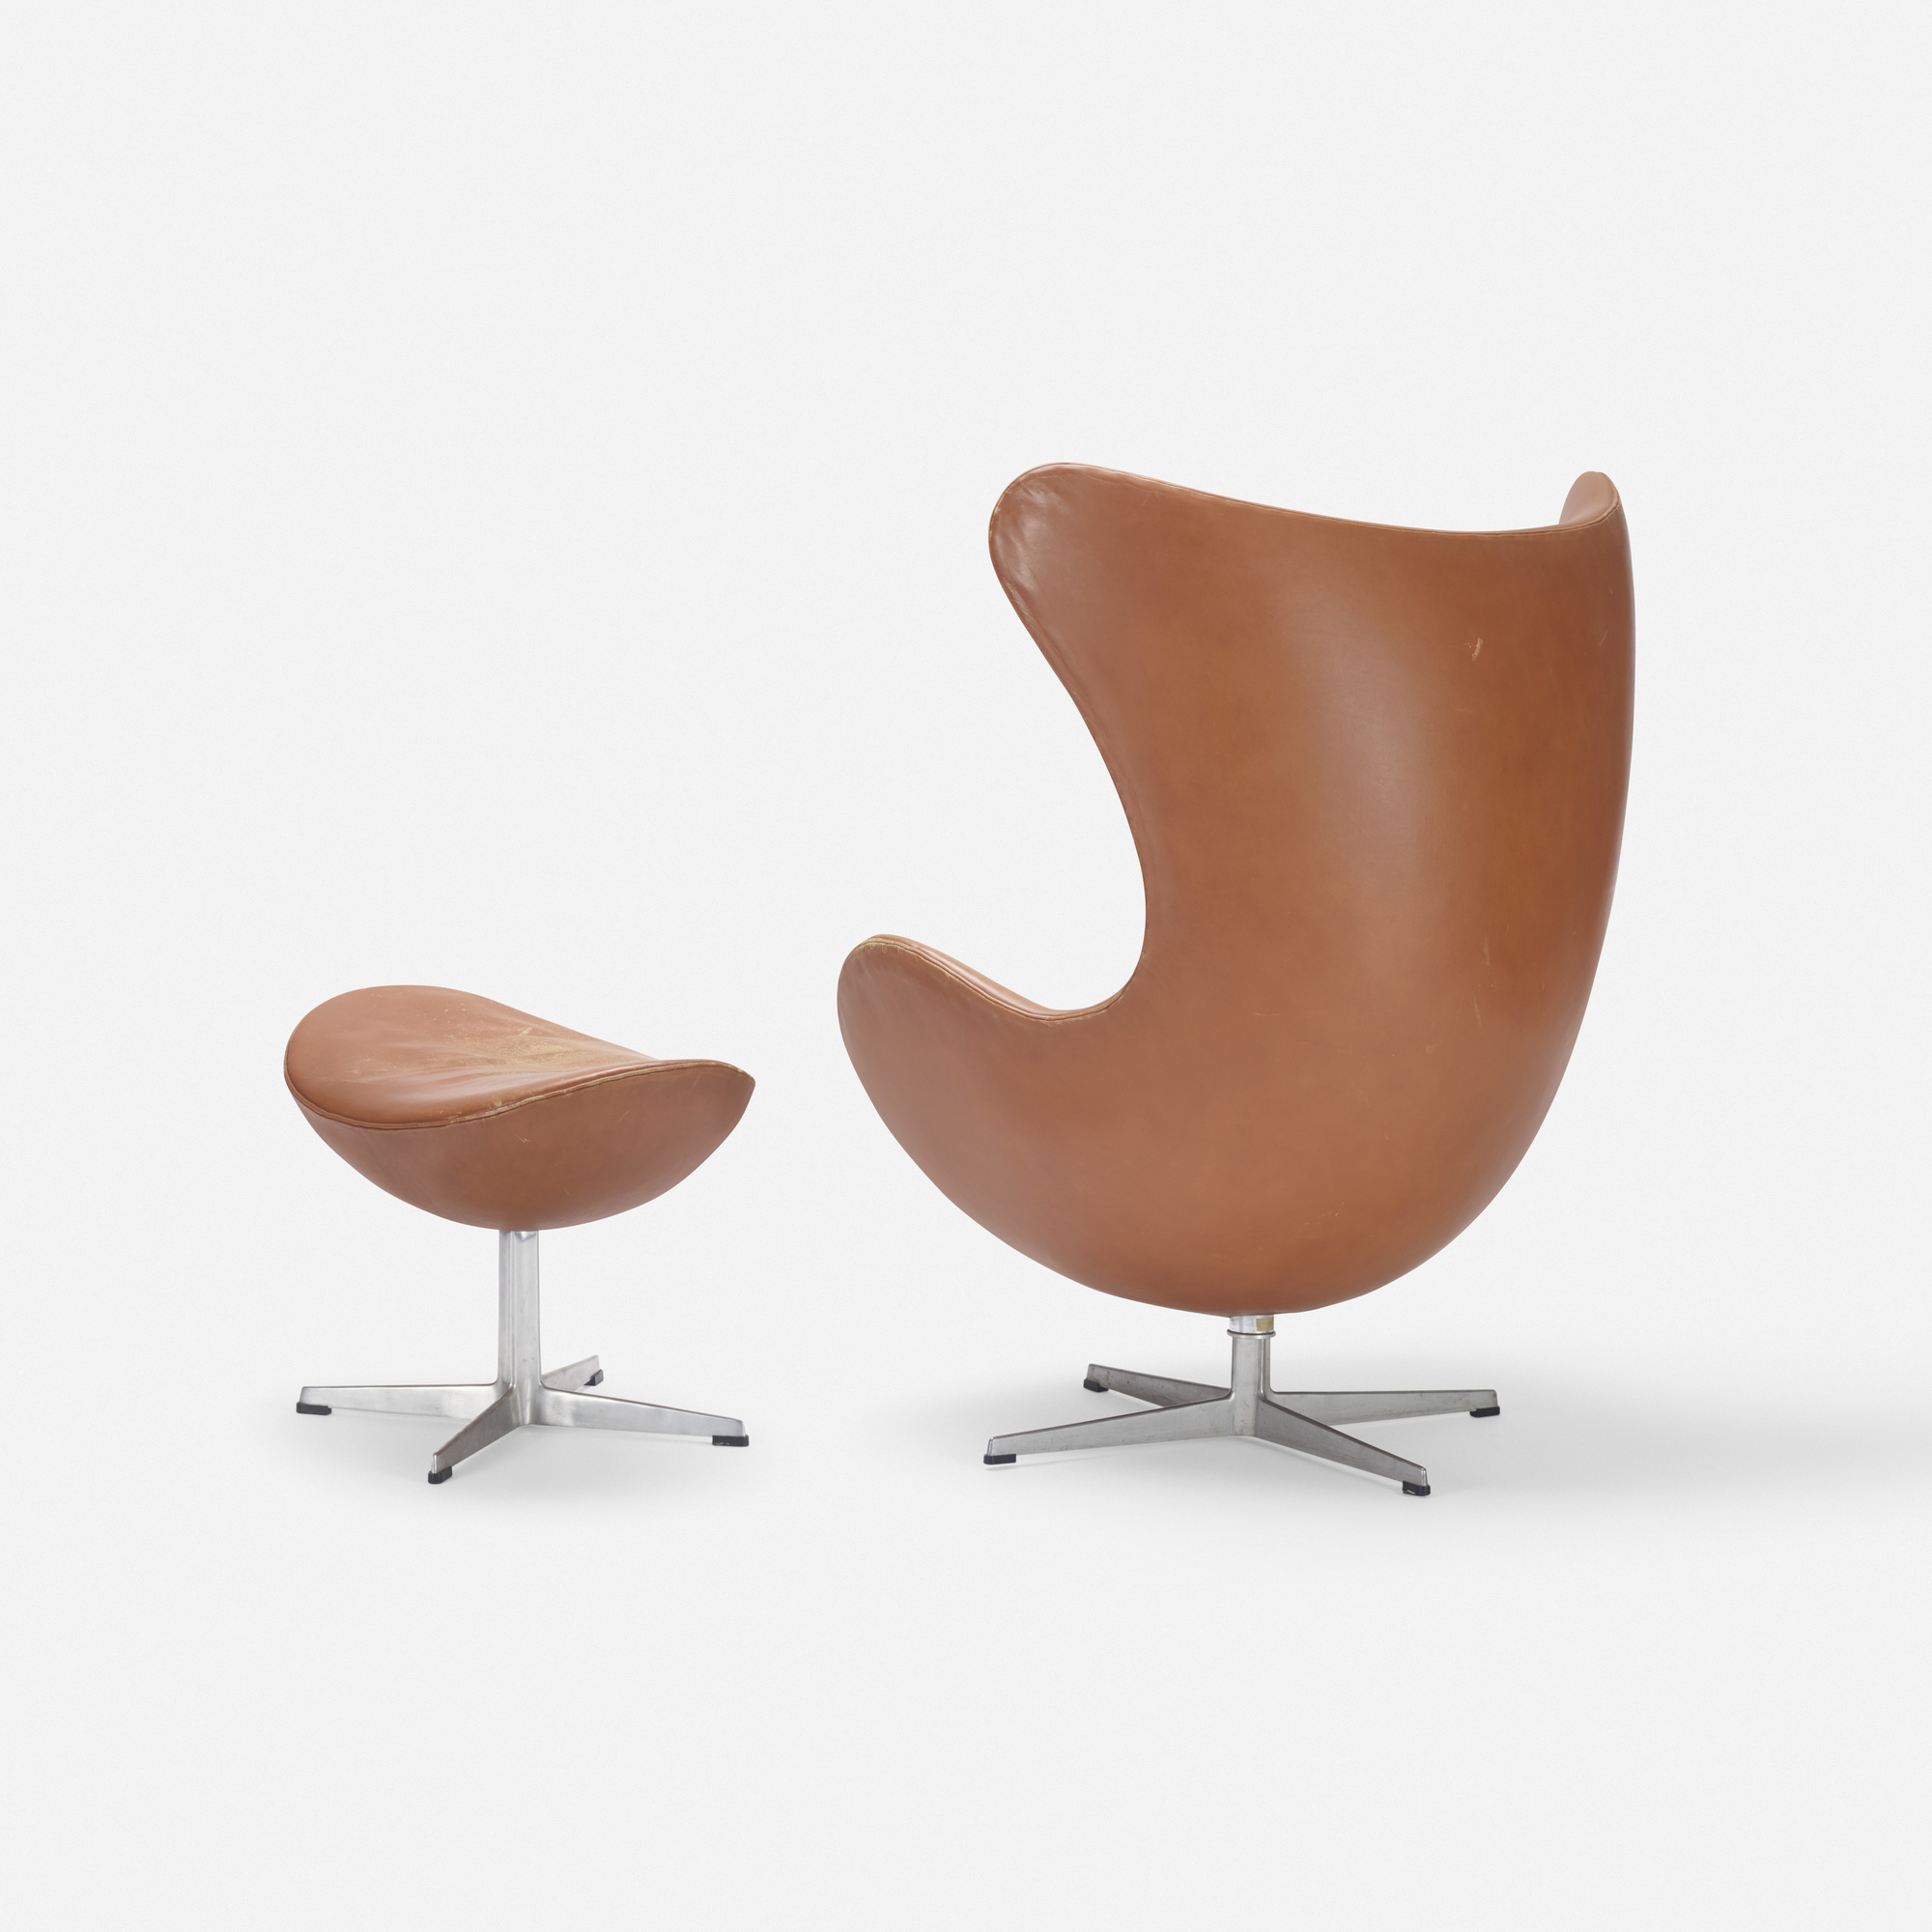 282: Arne Jacobsen / Egg Chair And Ottoman (1 Of 3)